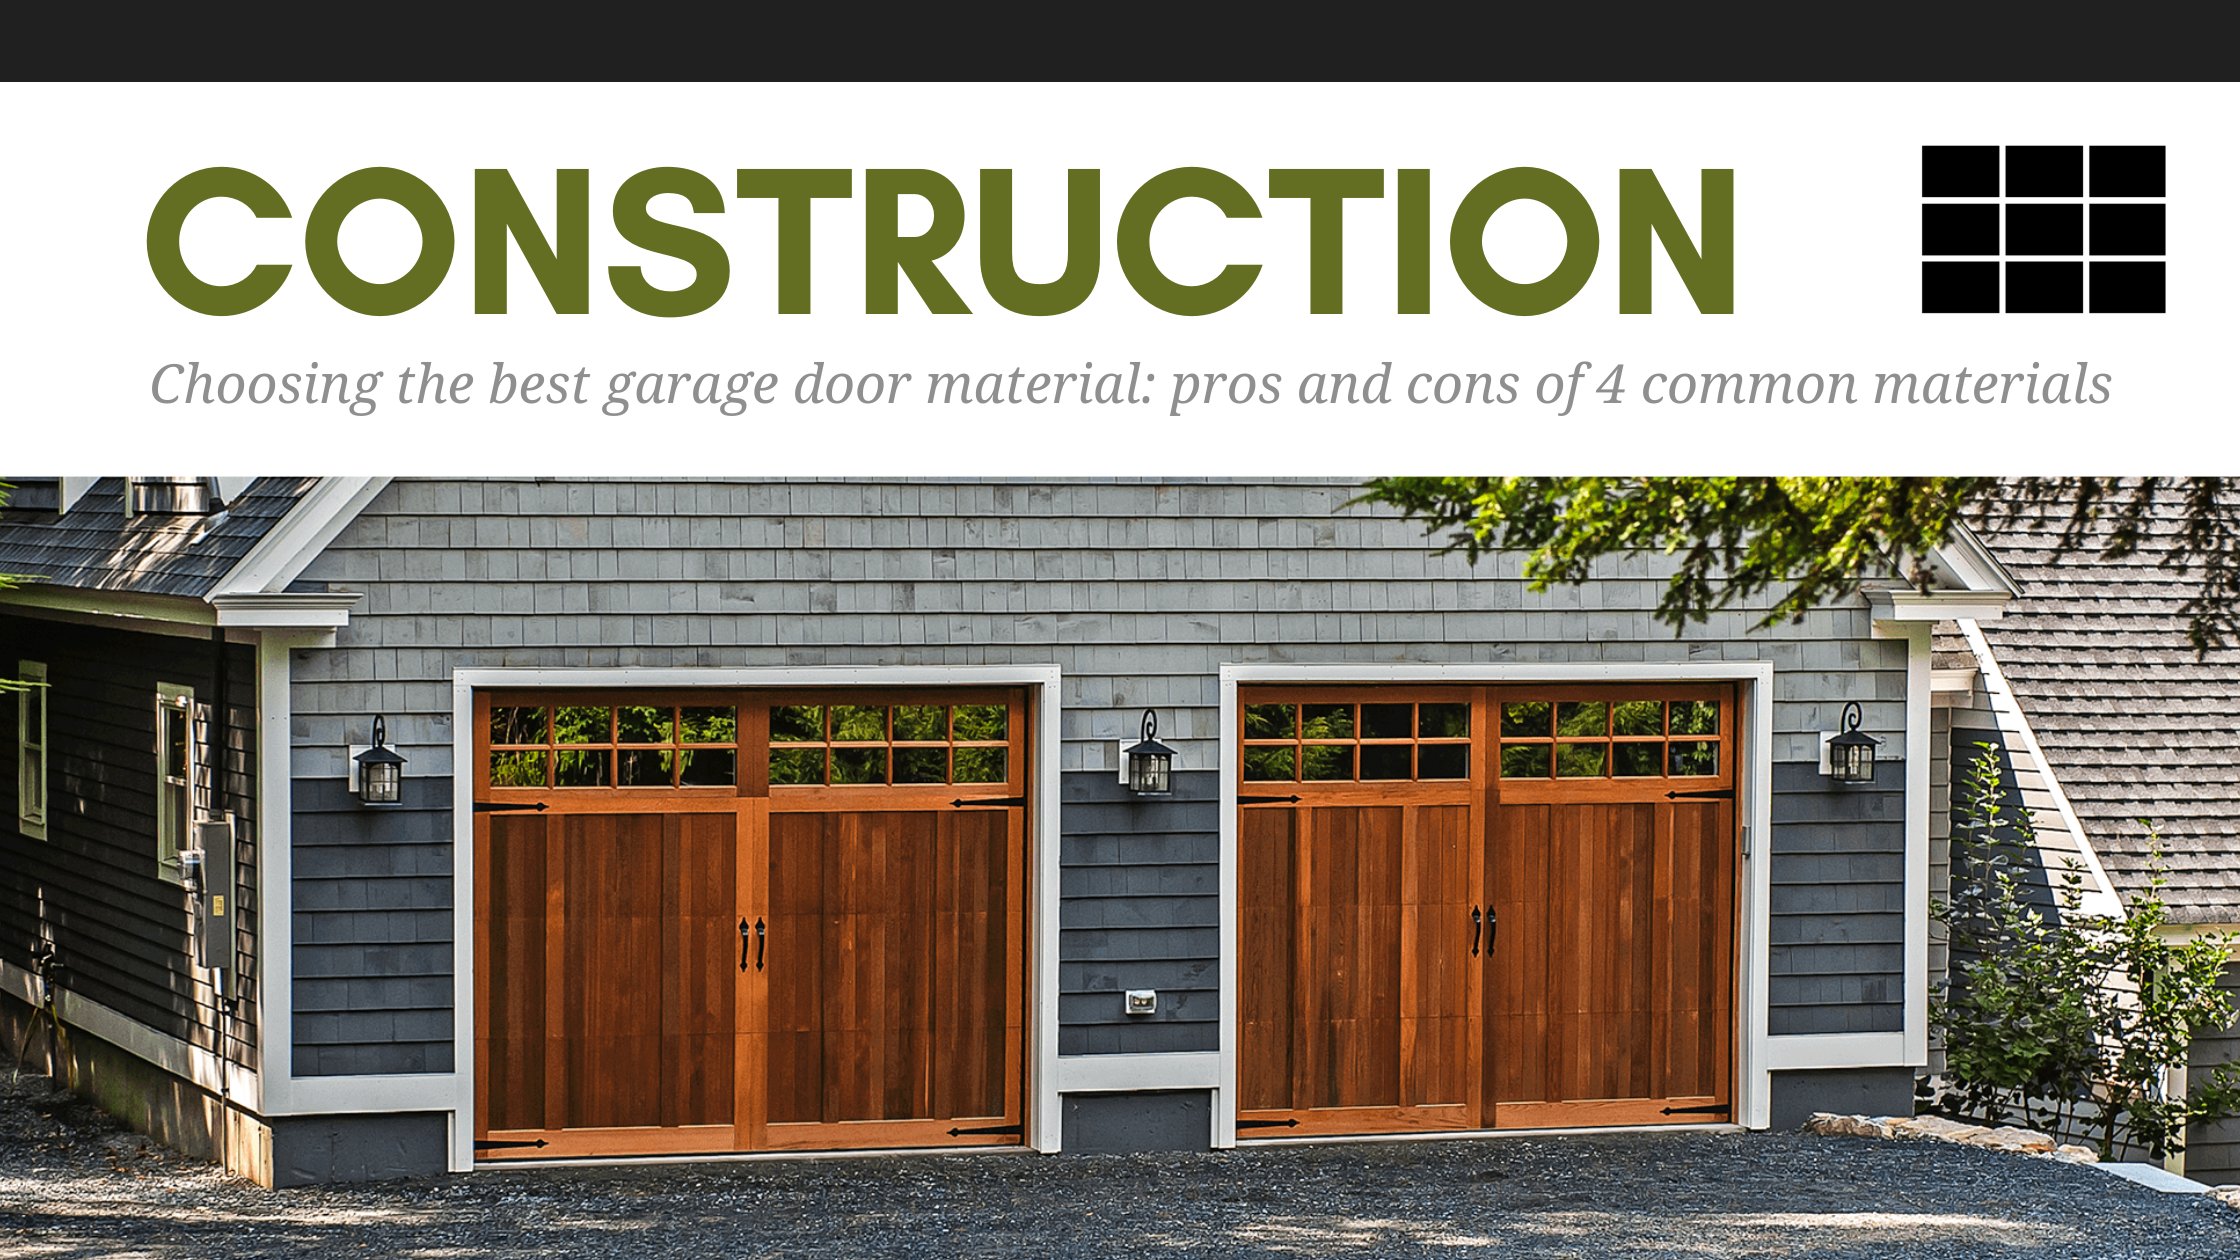 Choosing the best garage door material: pros and cons of 4 common materials